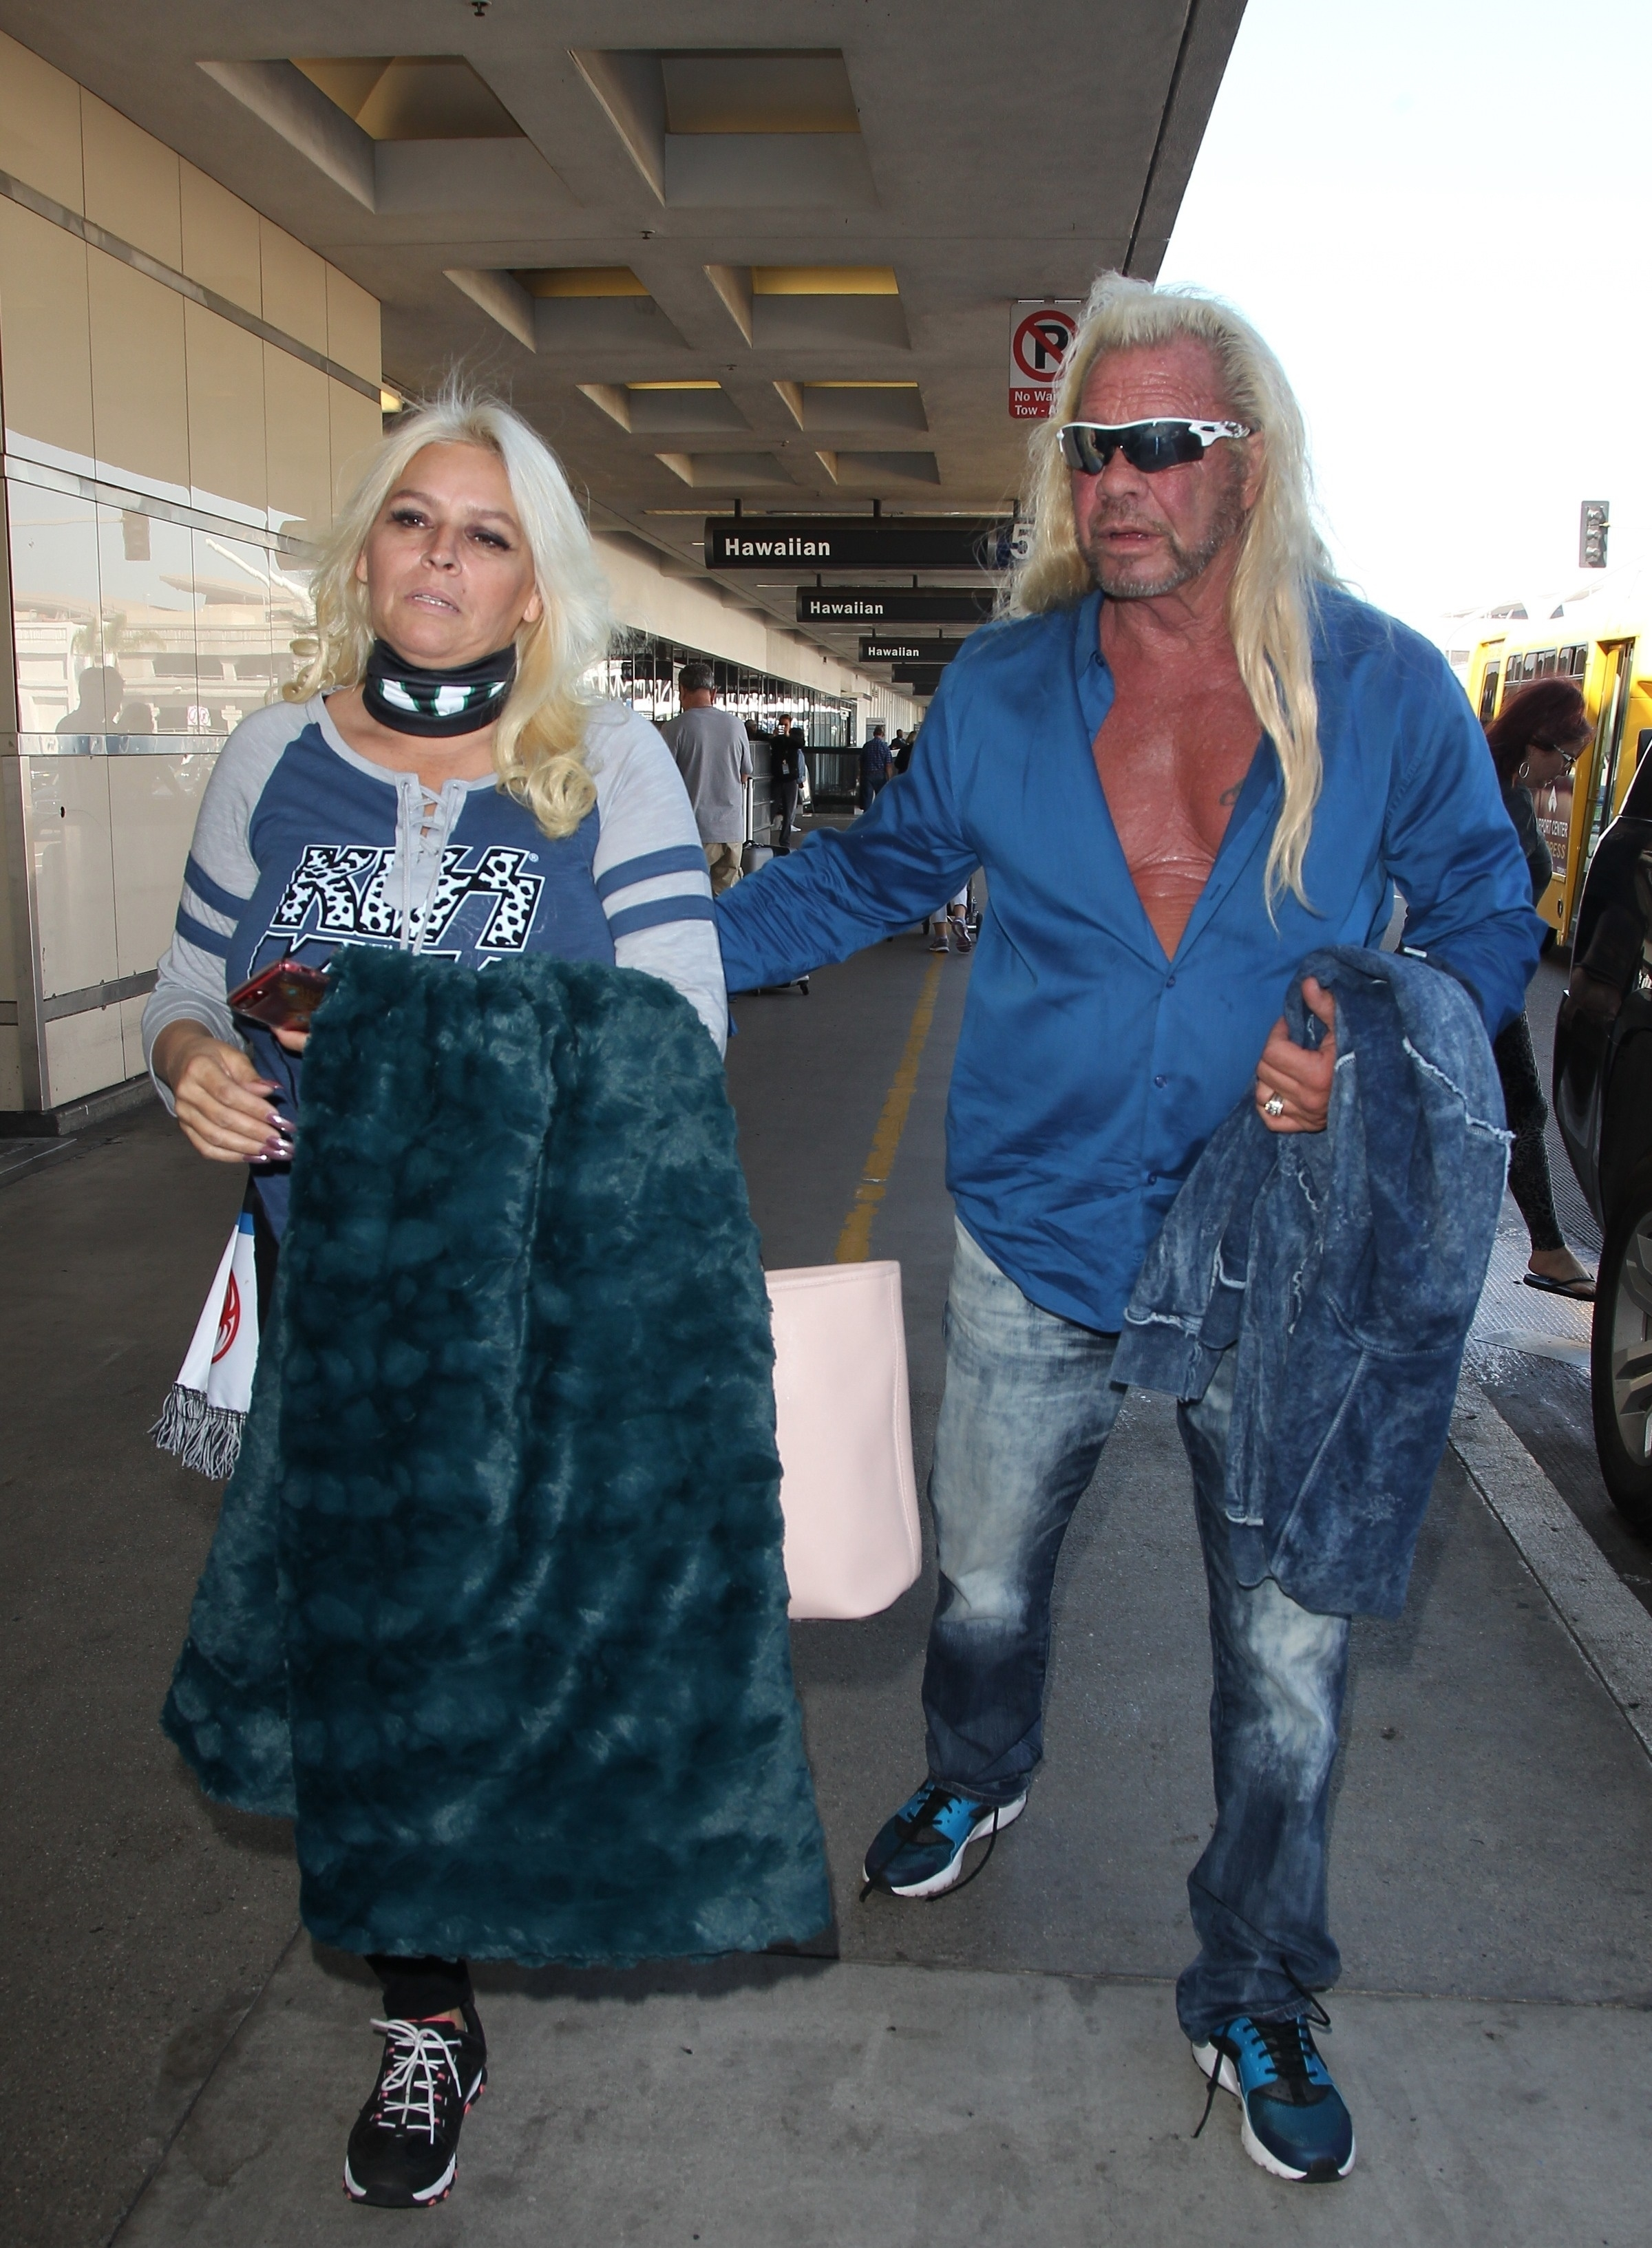 Dog the Bounty Hunter shares a loving tribute to Beth